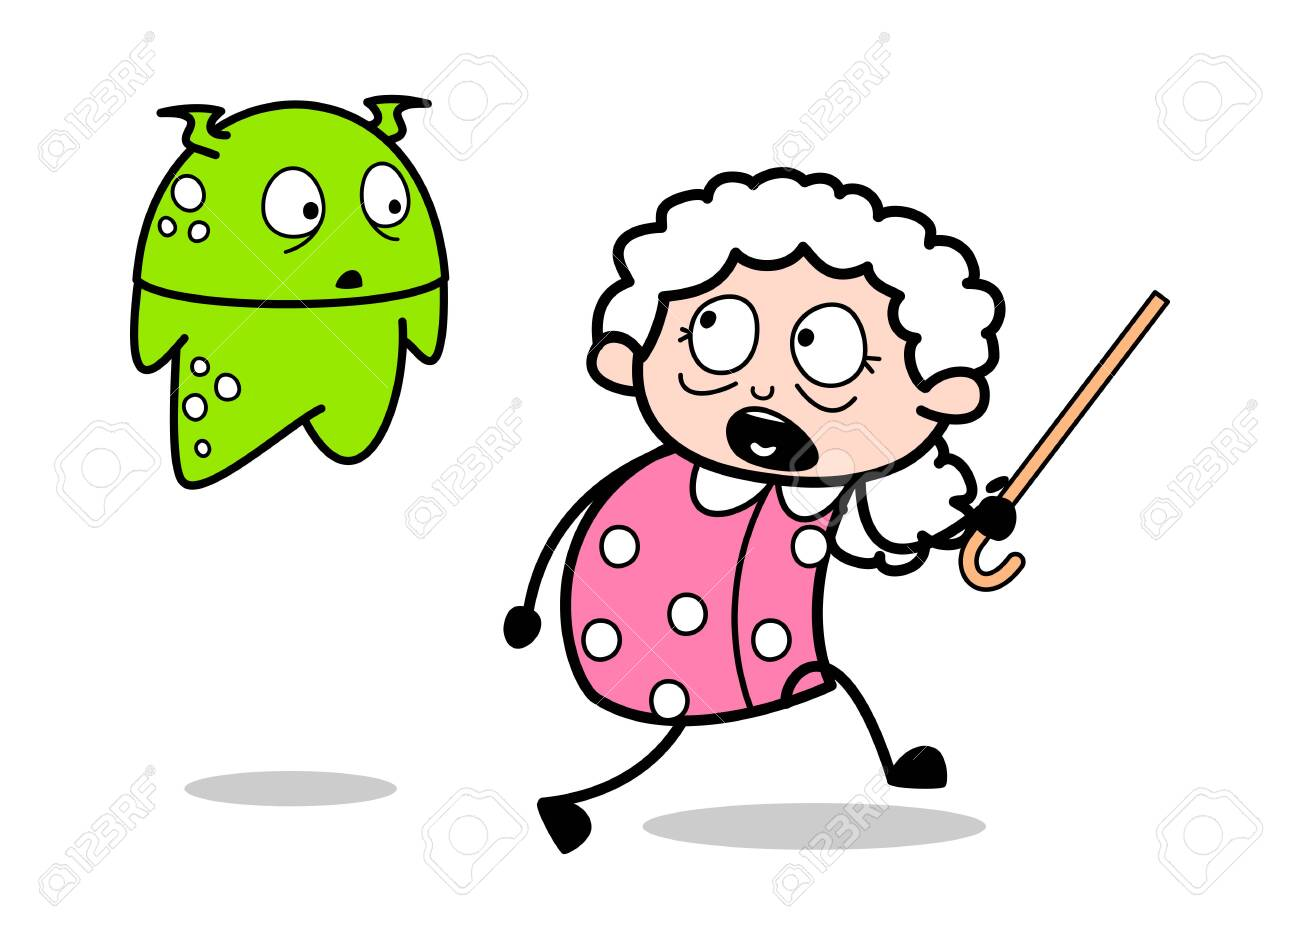 Old Lady Scared From A Alien Old Woman Cartoon Granny Vector Royalty Free Cliparts Vectors And Stock Illustration Image 123751899